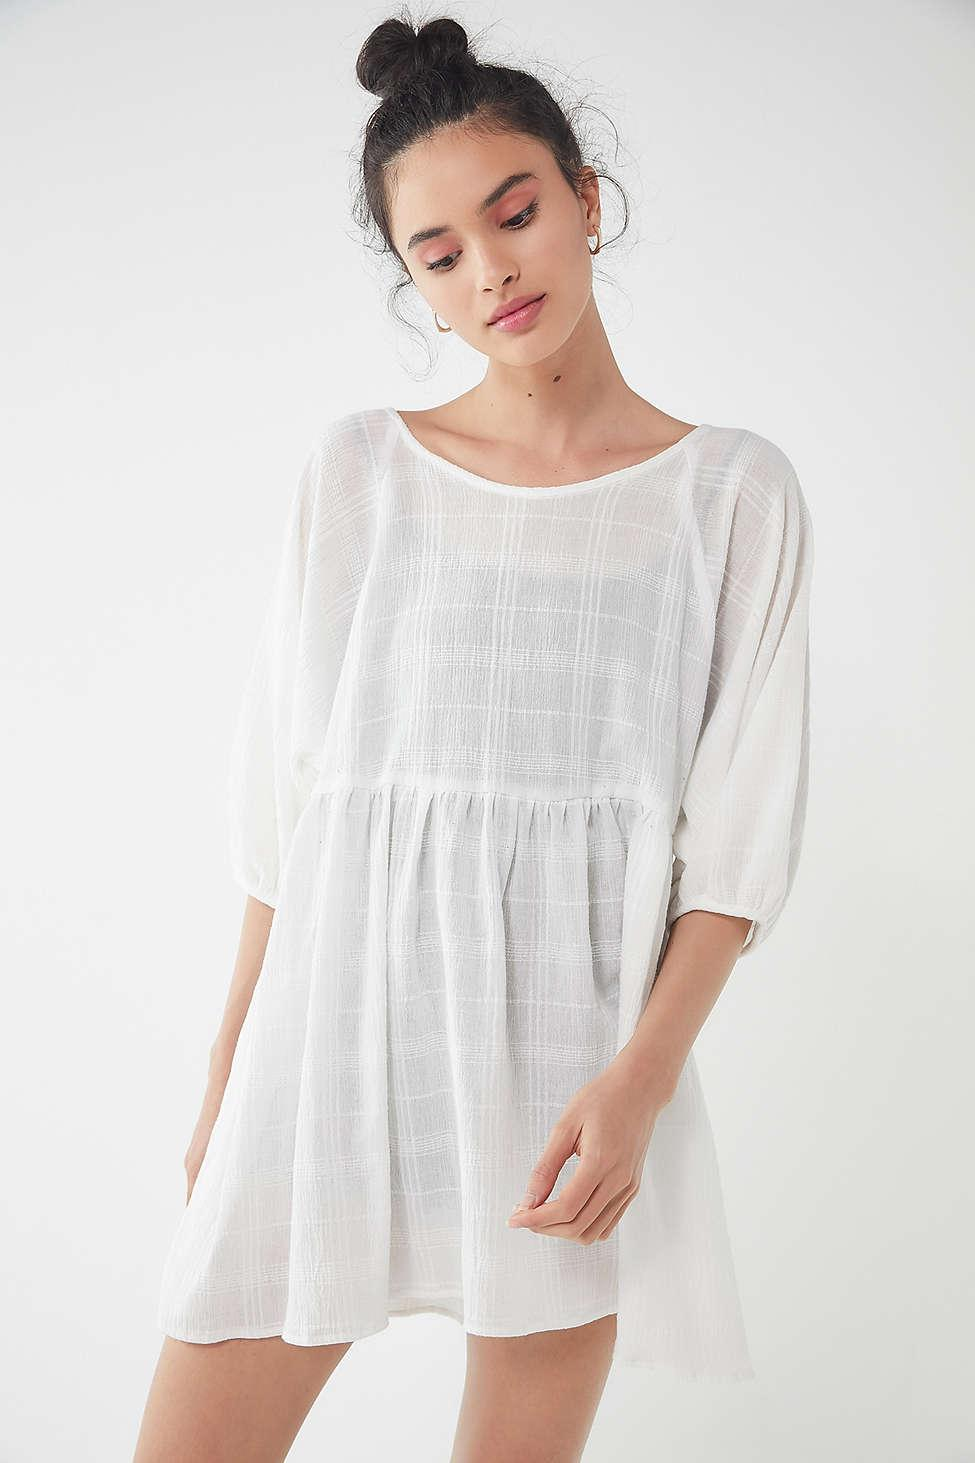 f2ad2d9c22056 Urban Renewal Remnants Gauze Babydoll Tunic Top in White - Lyst